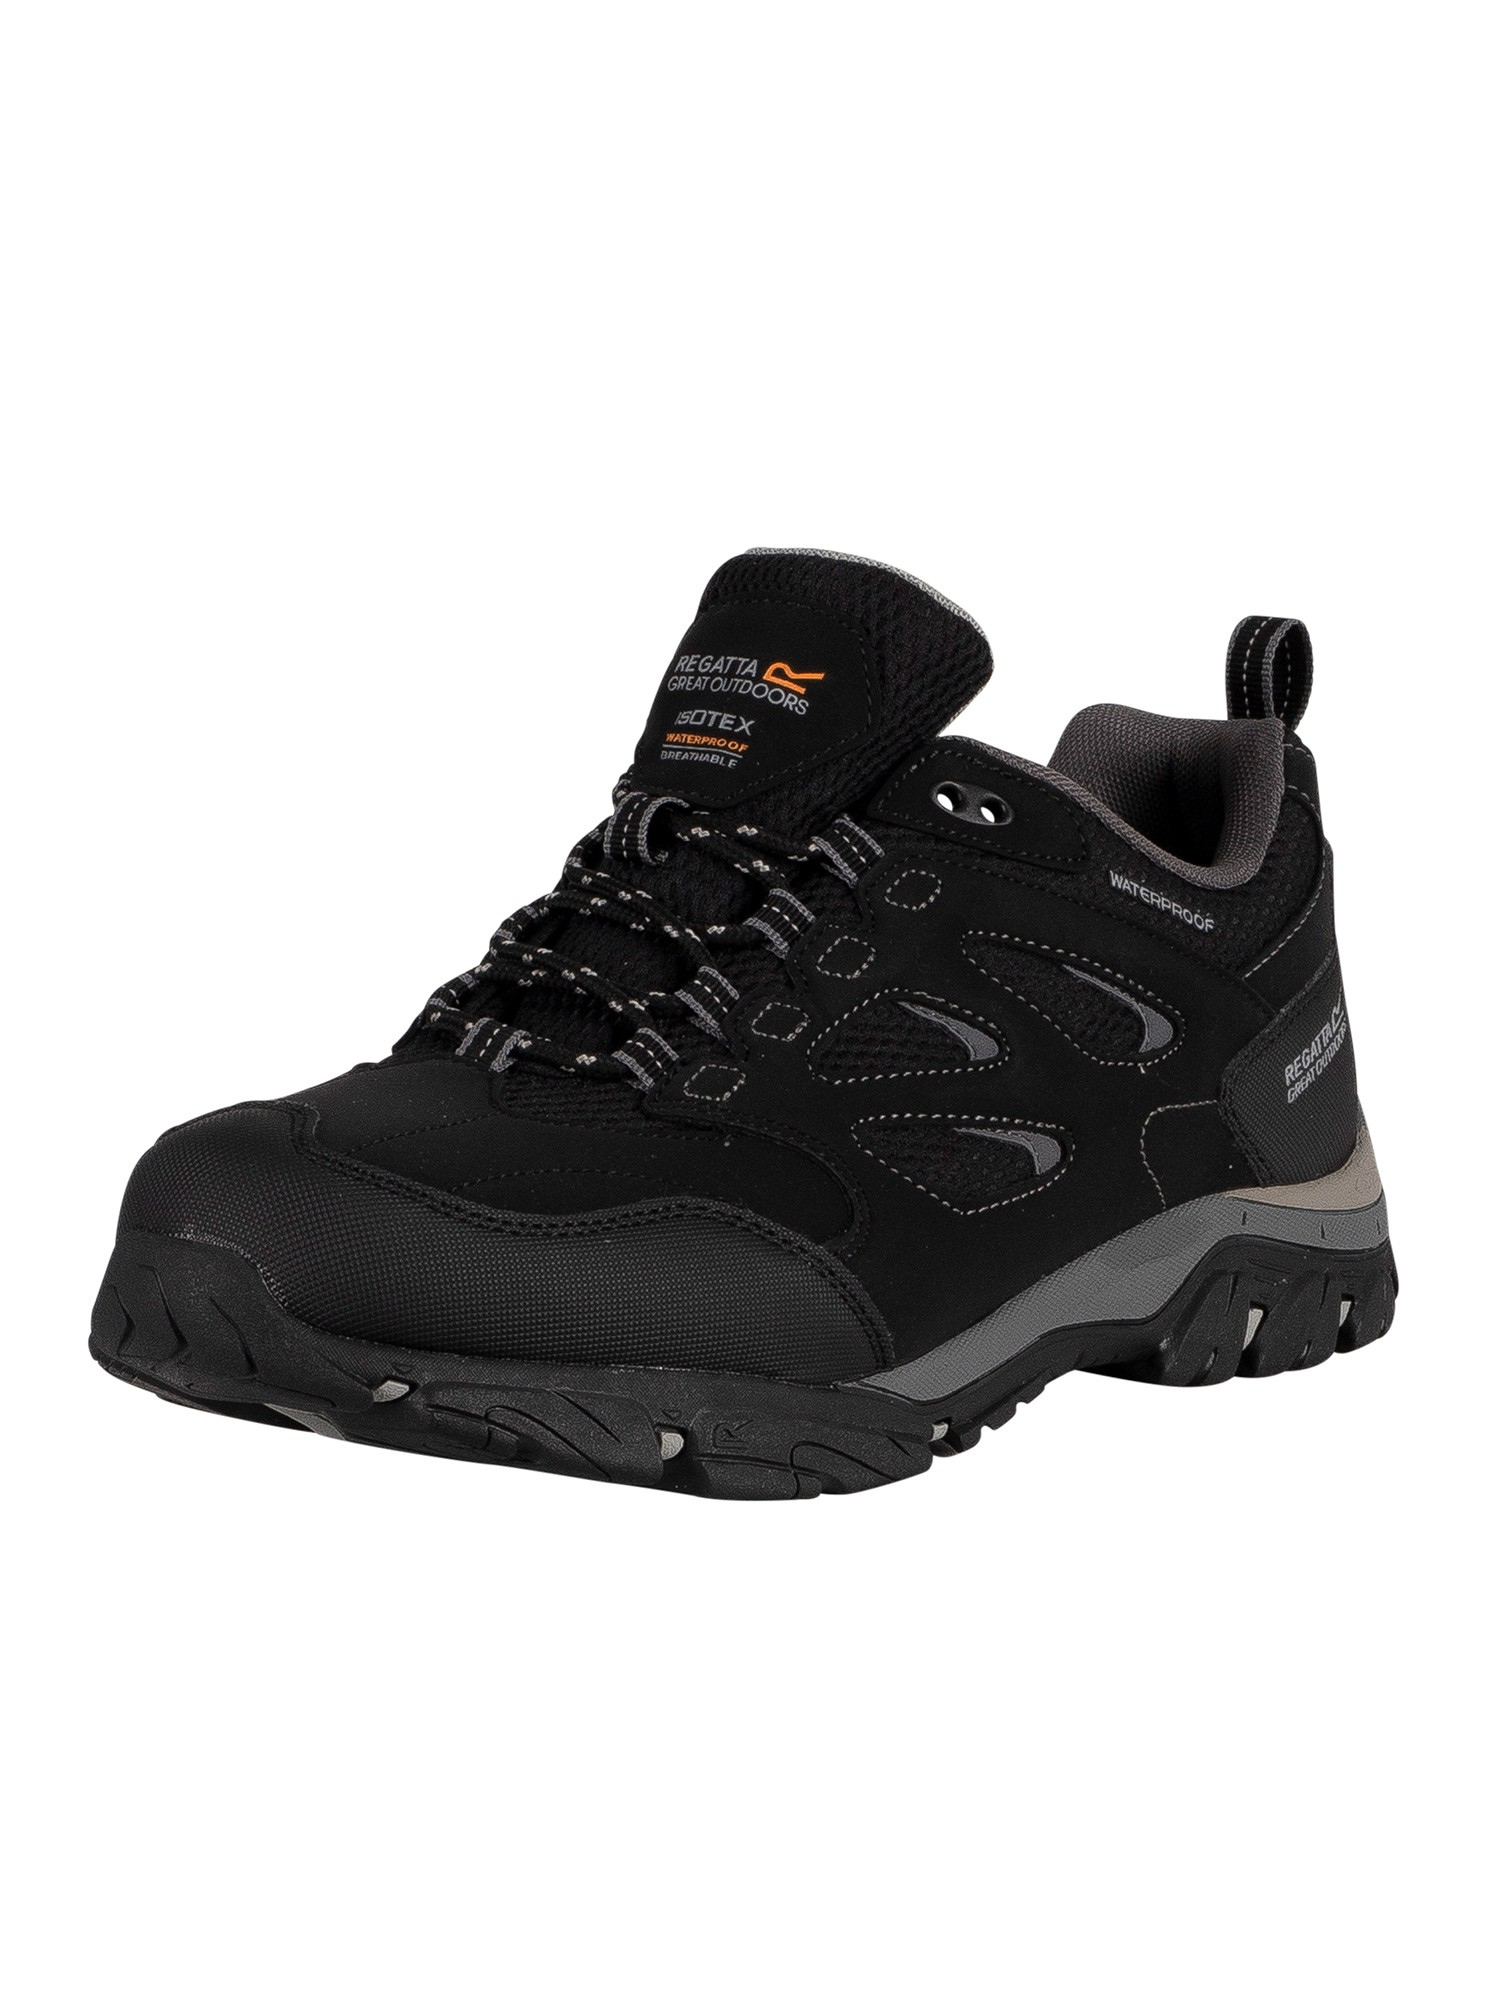 Holcombe IEP Low Walking Boots